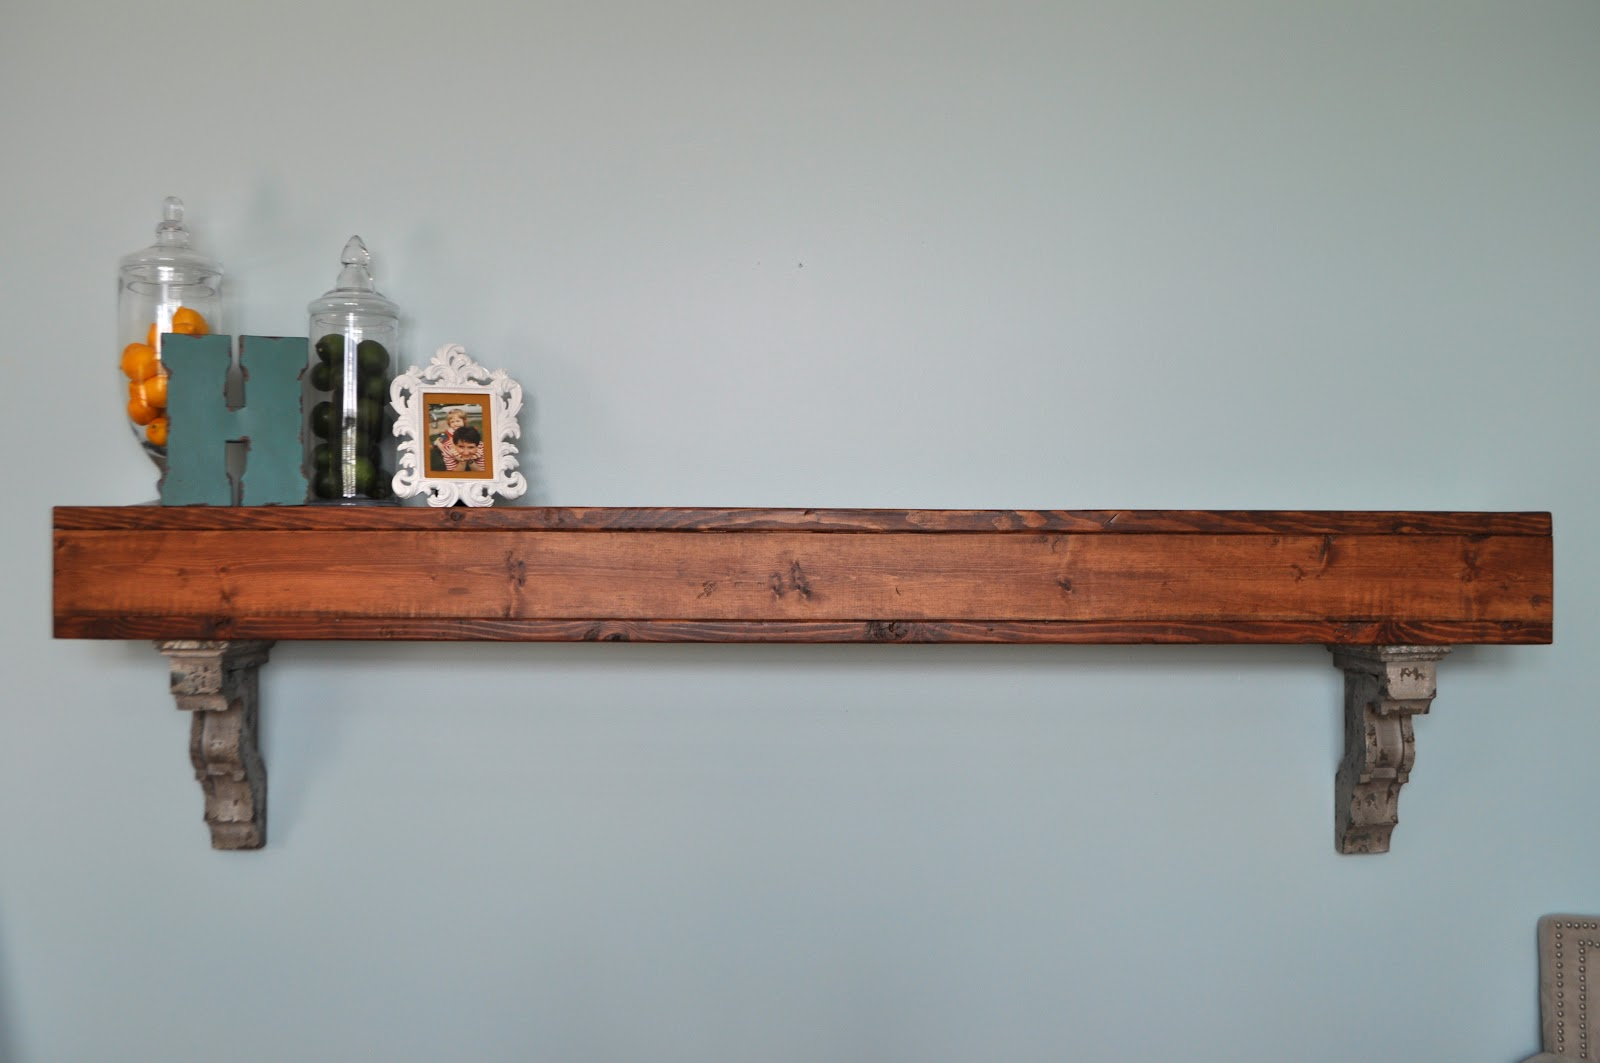 Dad Built This: Living Room Shelf